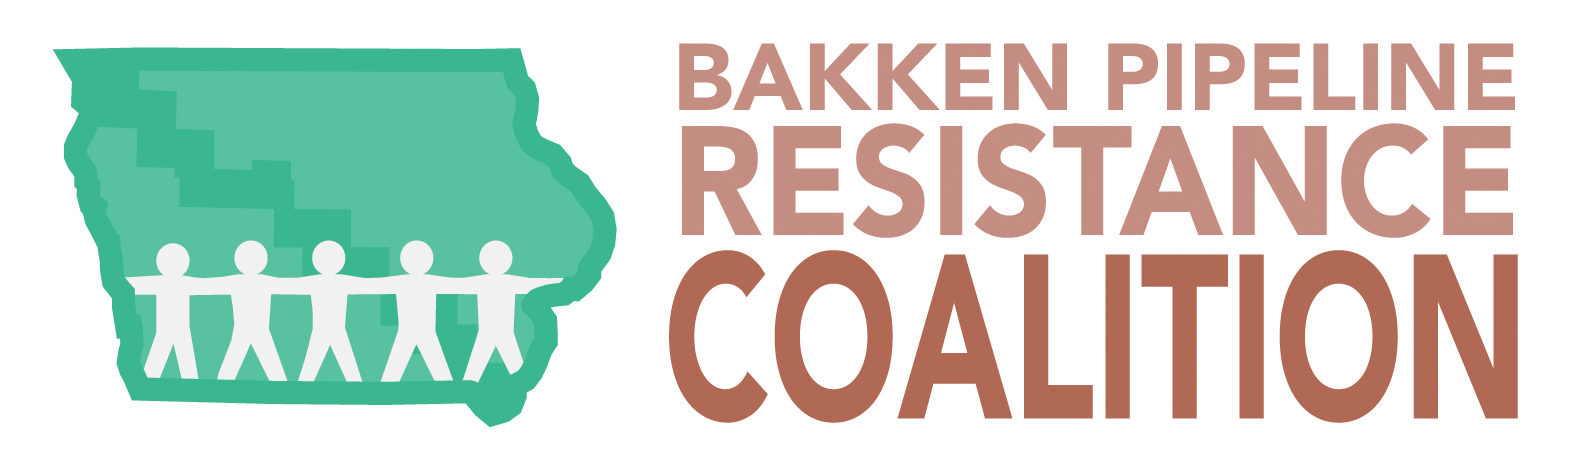 What is the Bakken Pipeline? – Bakken Pipeline Resistance